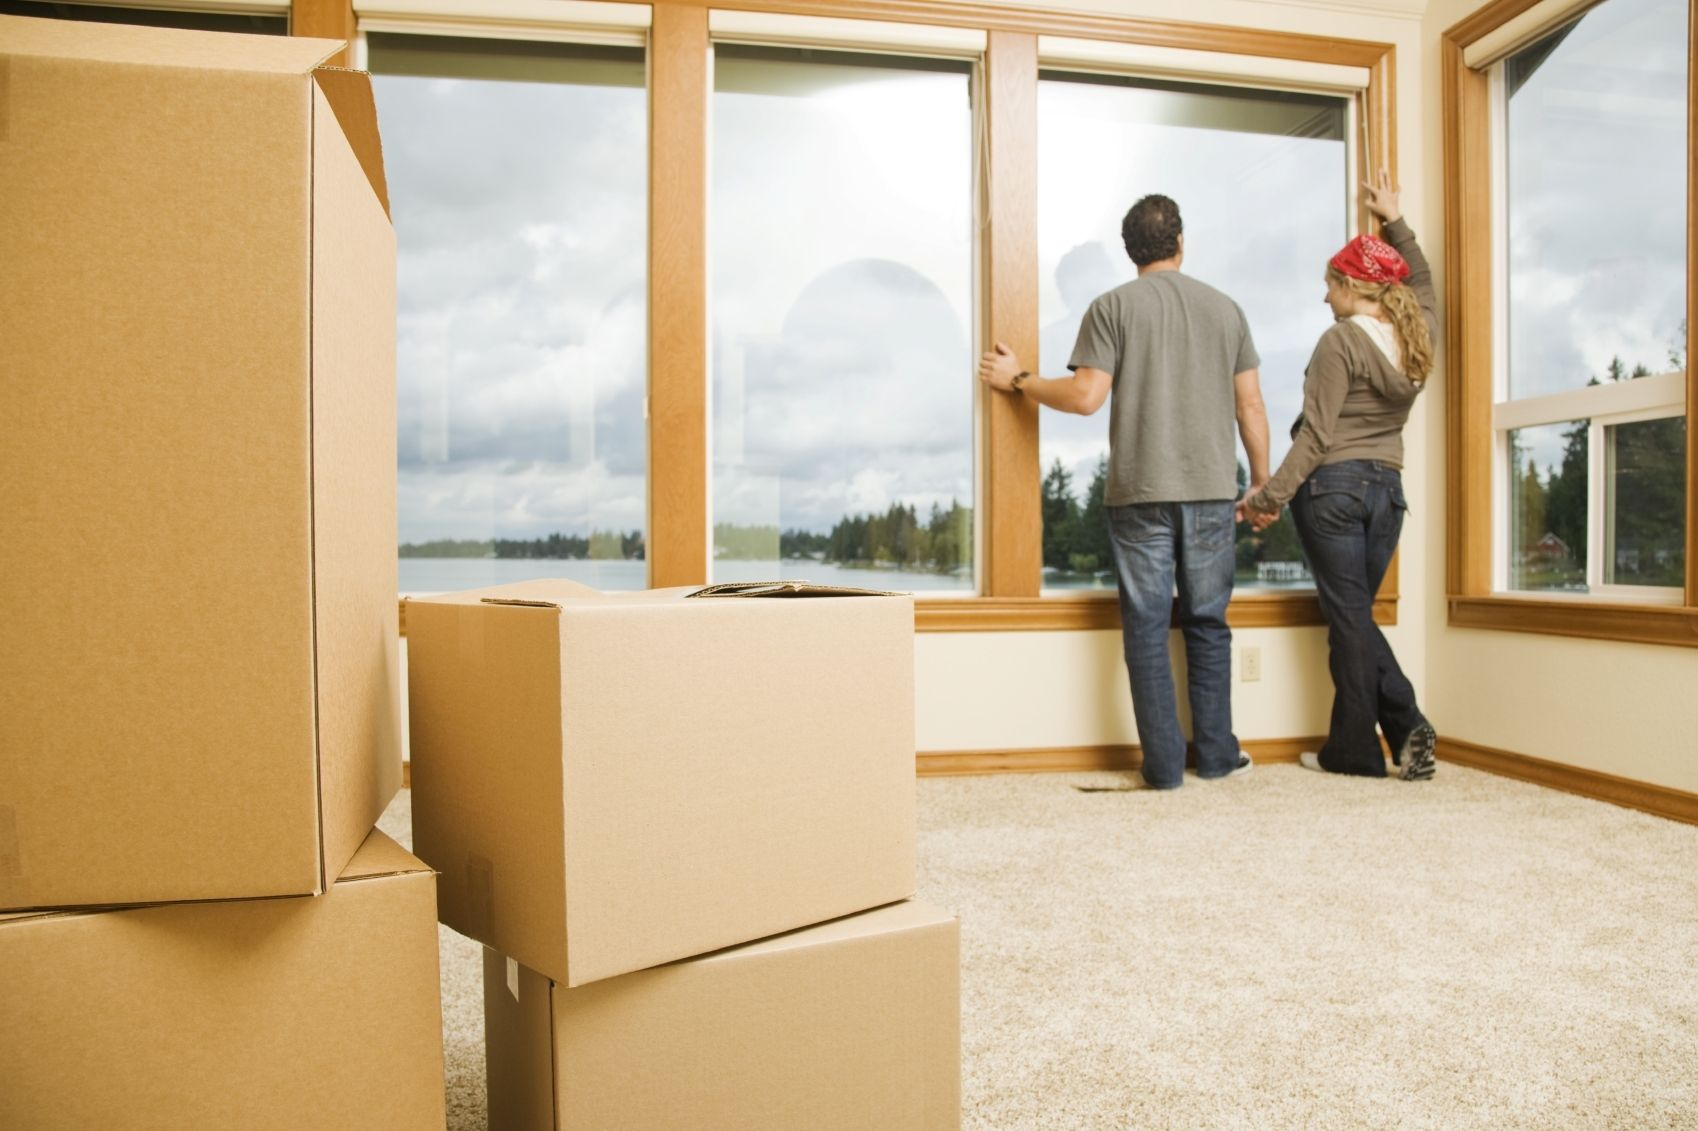 Skyhigh Moving Company Does The Work So You Can Just Relax With Hassle Cheap Movers And Great Service Moving And Storage Cheap Moving Companies Cheap Houses